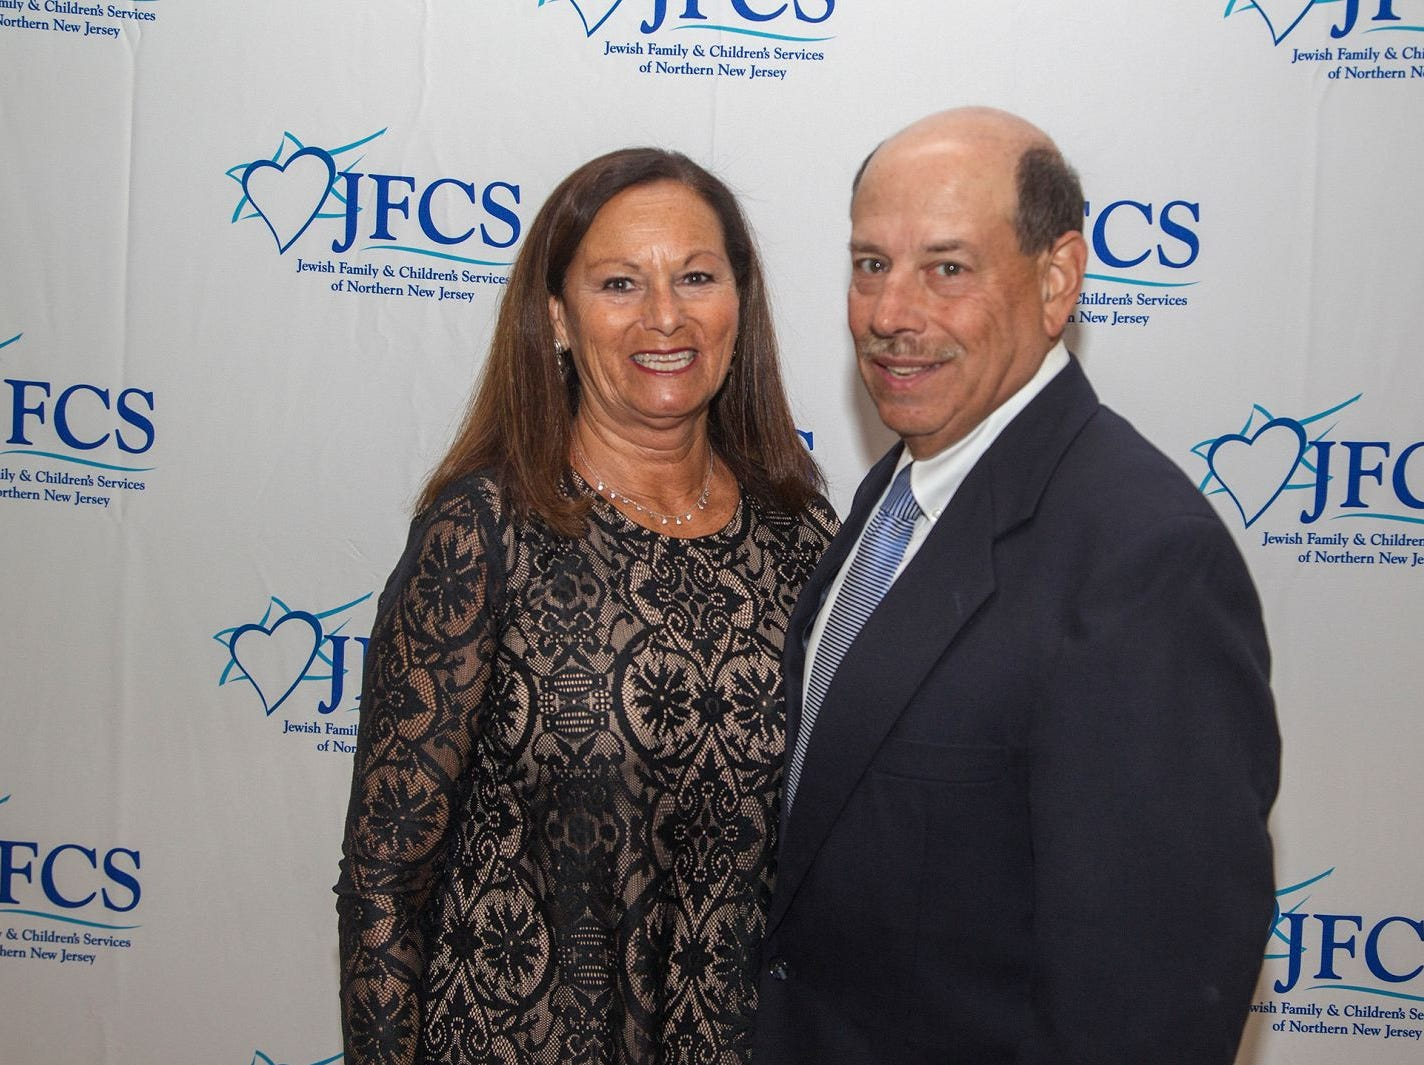 Laurie and Barry Goldman. Jewish Family & Children's Services of Northern New Jersey held its annual gala at the Edgewood Country Club in River Vale. The evening honored Shira Feuerstein, Jayne Petak, and Alan Scharfstein for their leadership, support, and dedication. 11/18/2018